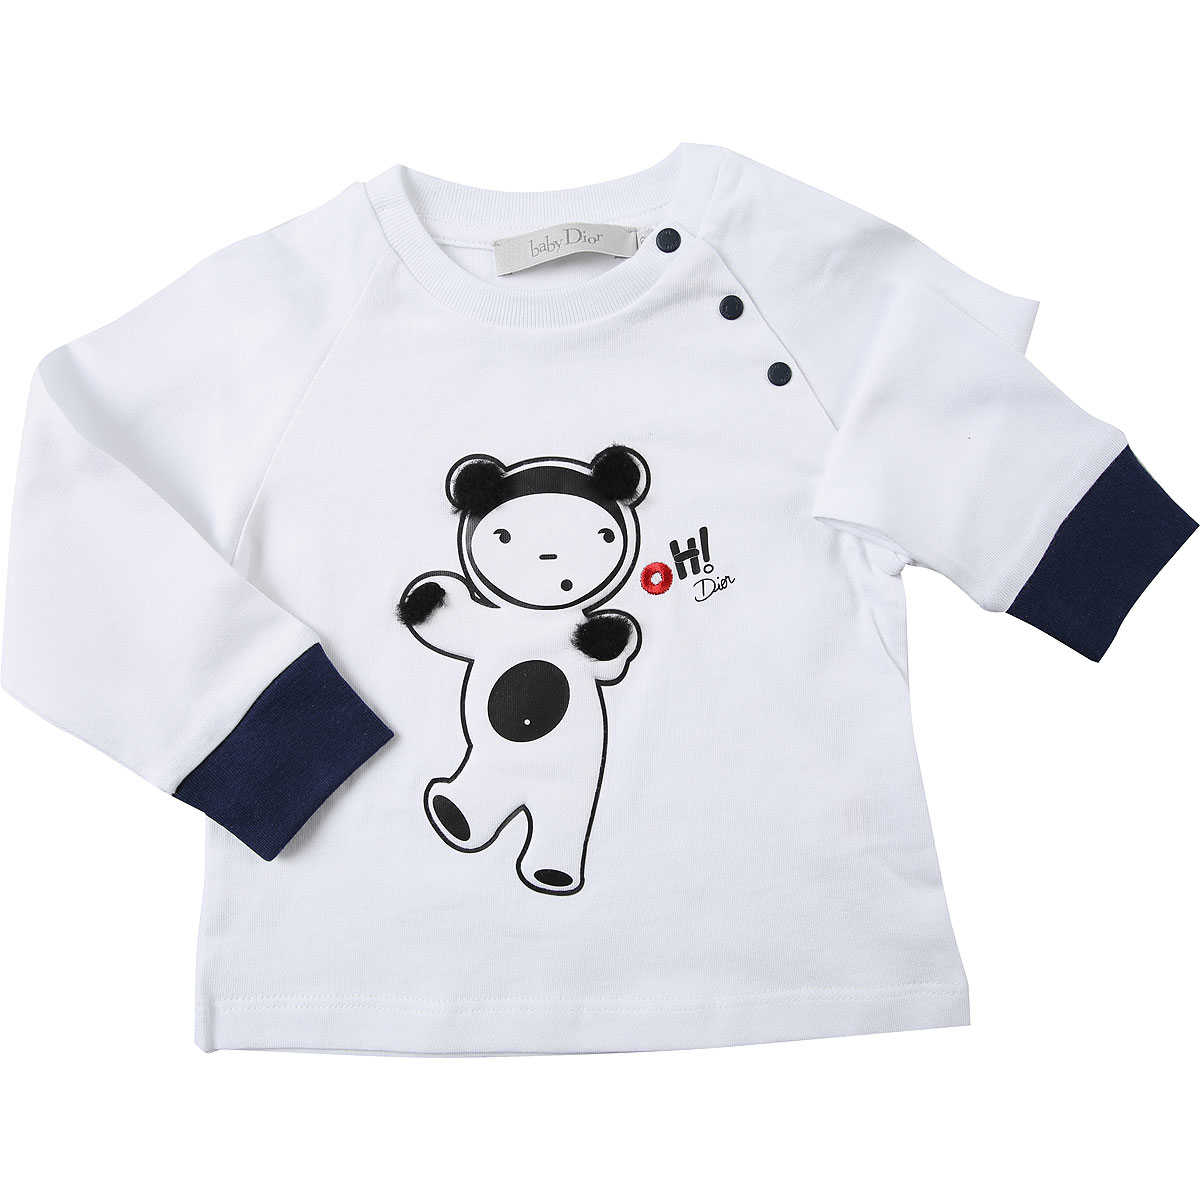 Baby Dior Baby T-Shirt for Boys On Sale White SE - GOOFASH